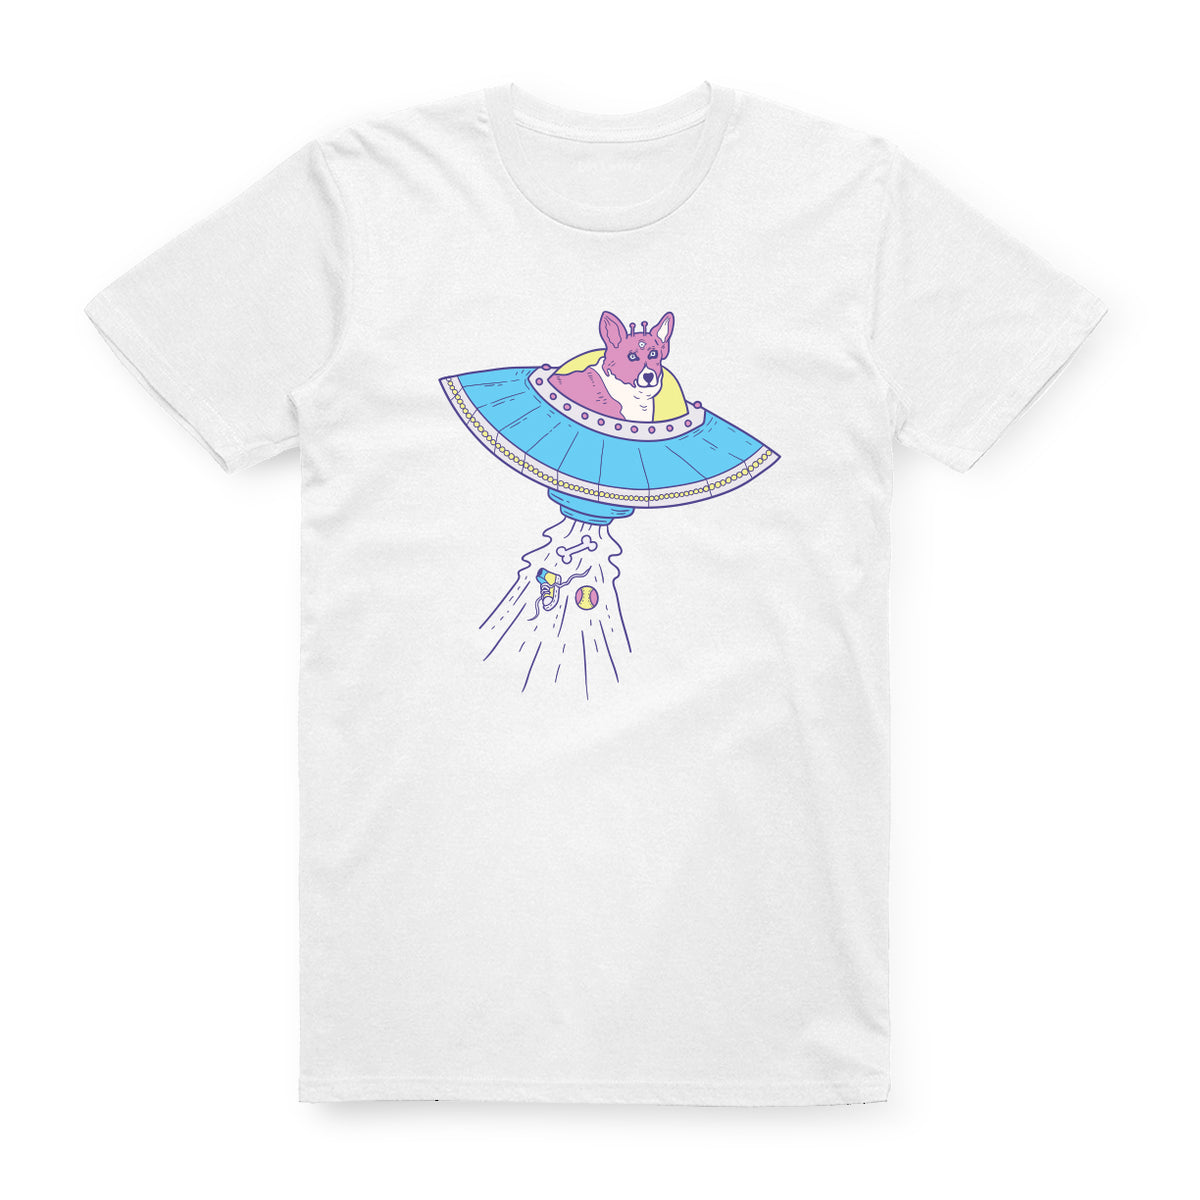 Space Doggo Tee